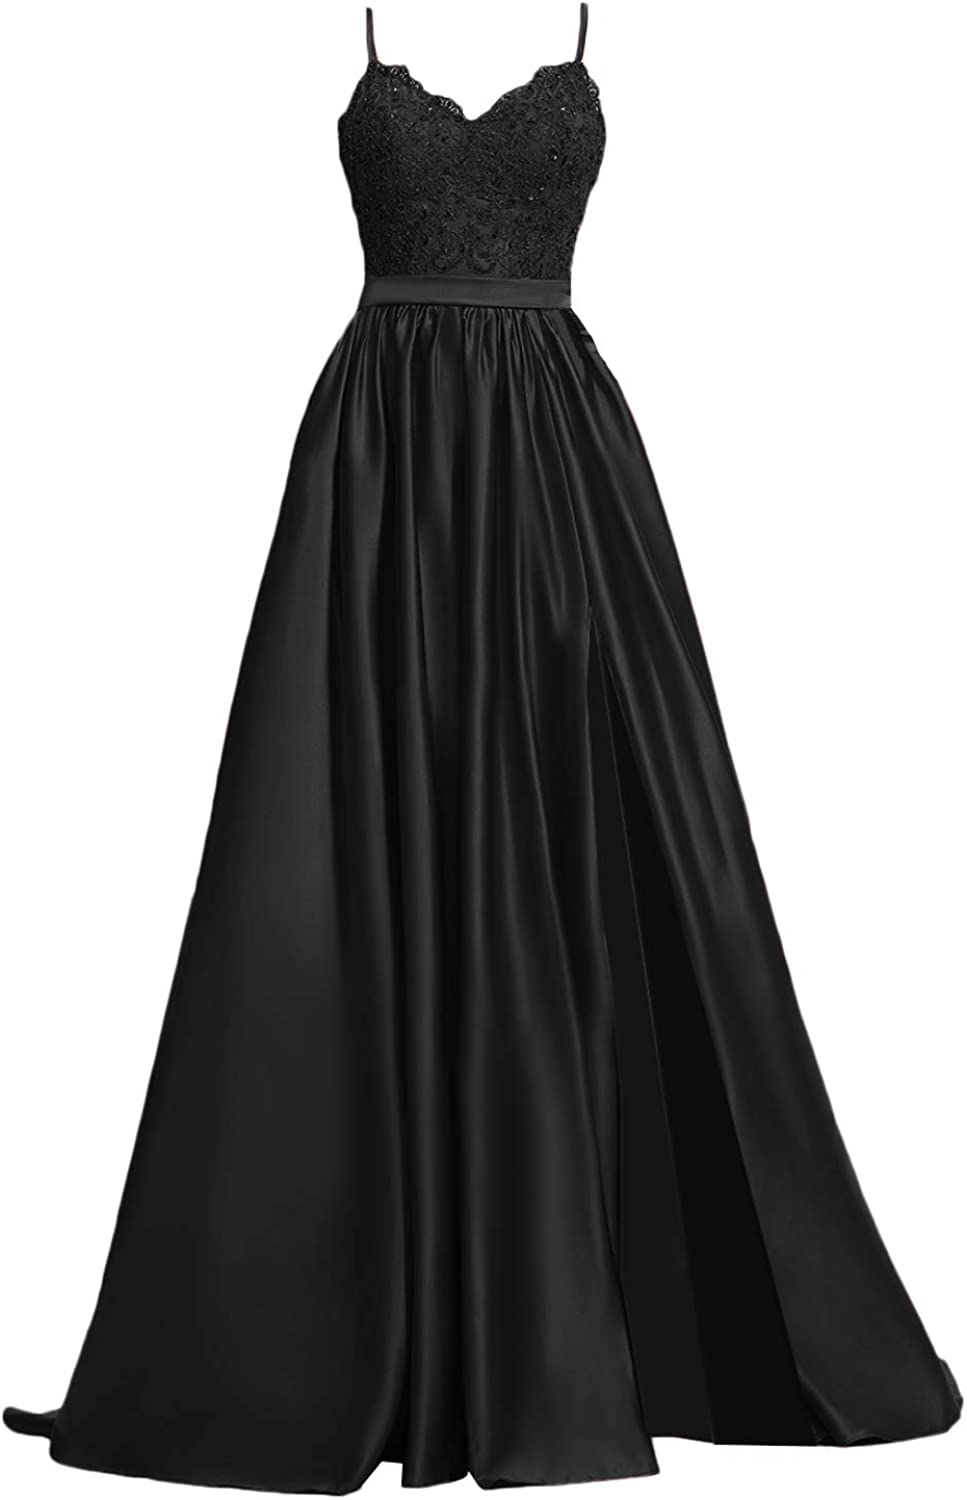 APXPF Women's Lace Prom Dresses Long Satin Slit Formal Evening Gowns with Pockets